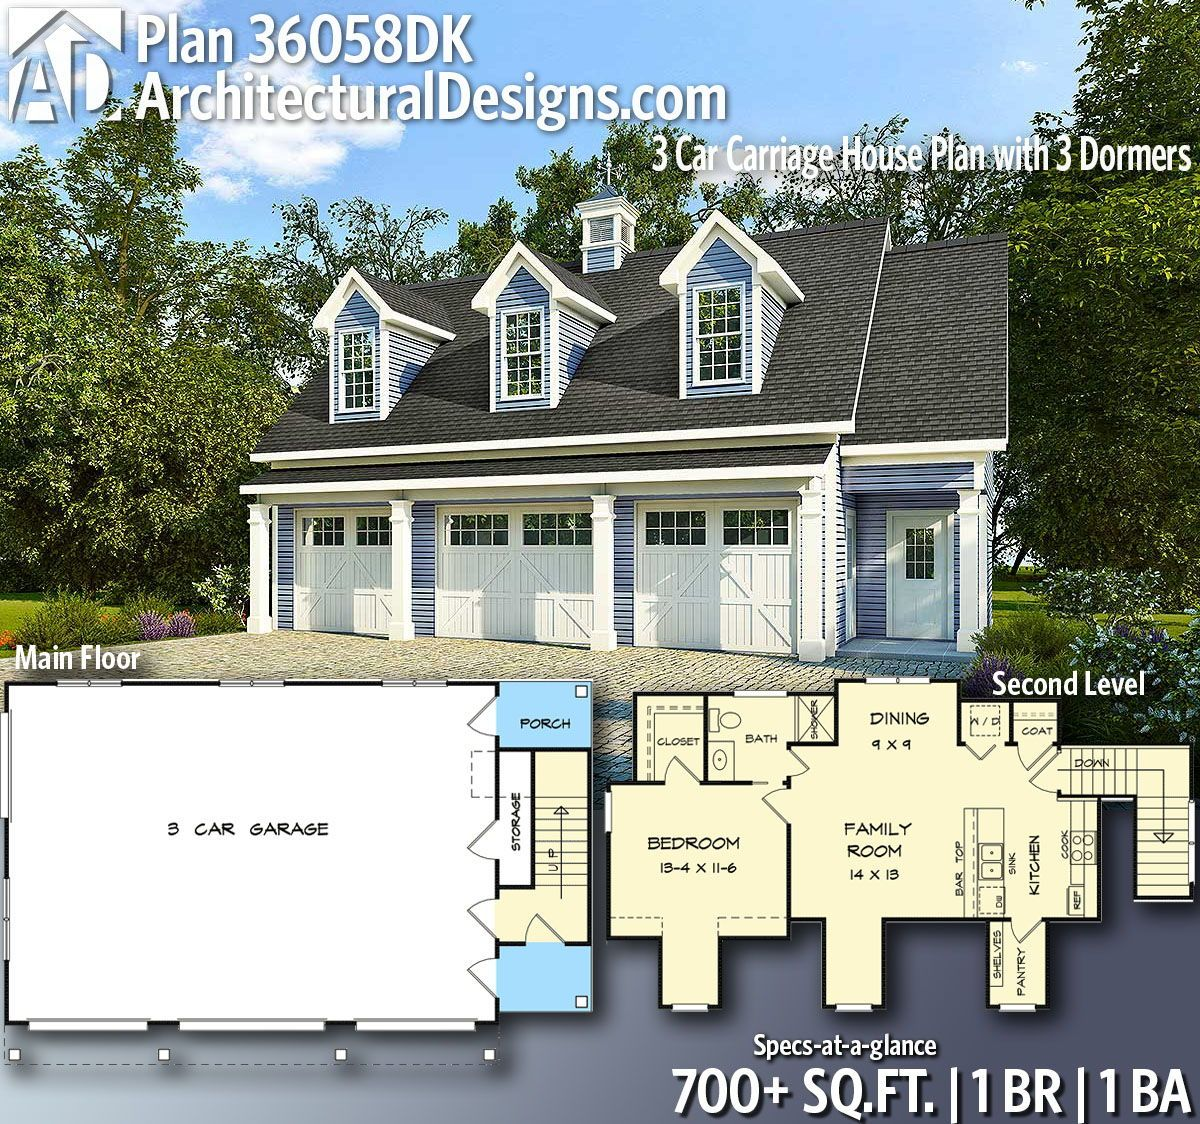 Plan 36058dk 3 Car Carriage House Plan With 3 Dormers Carriage House Plans House Plans Garage Door Design